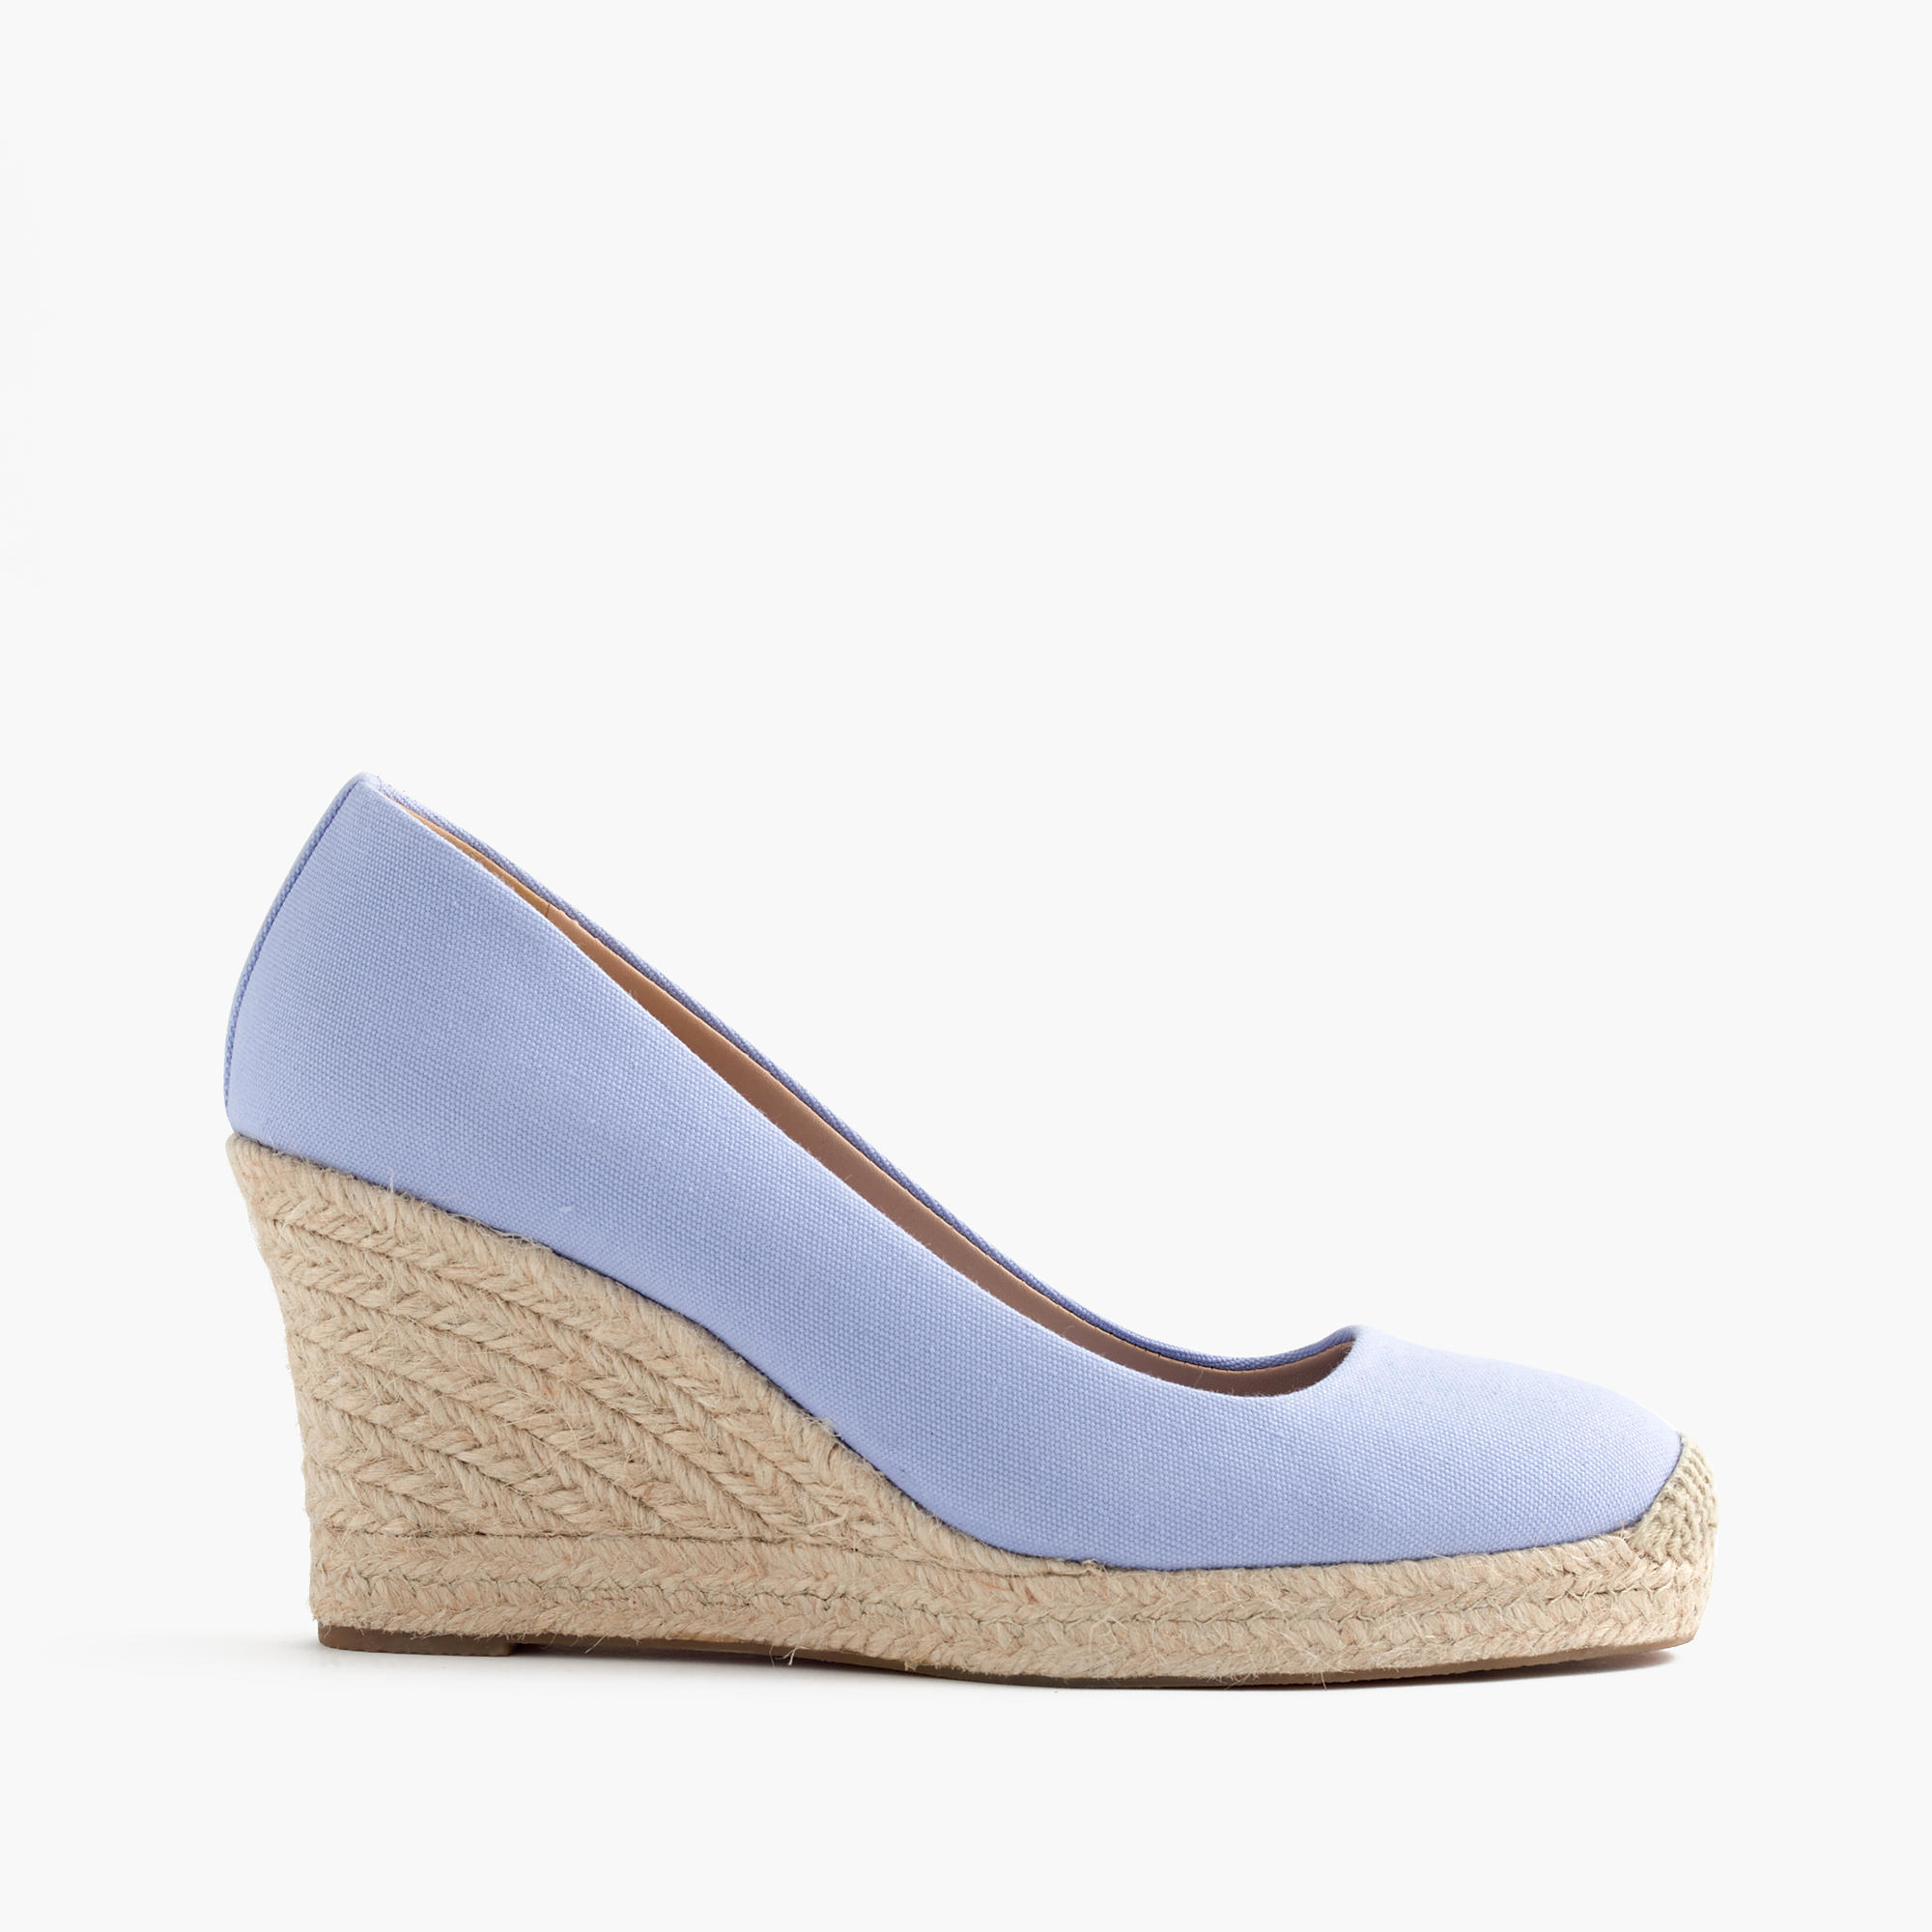 91cc3ee95cc J.Crew Seville Espadrille Wedges in Blue - Lyst